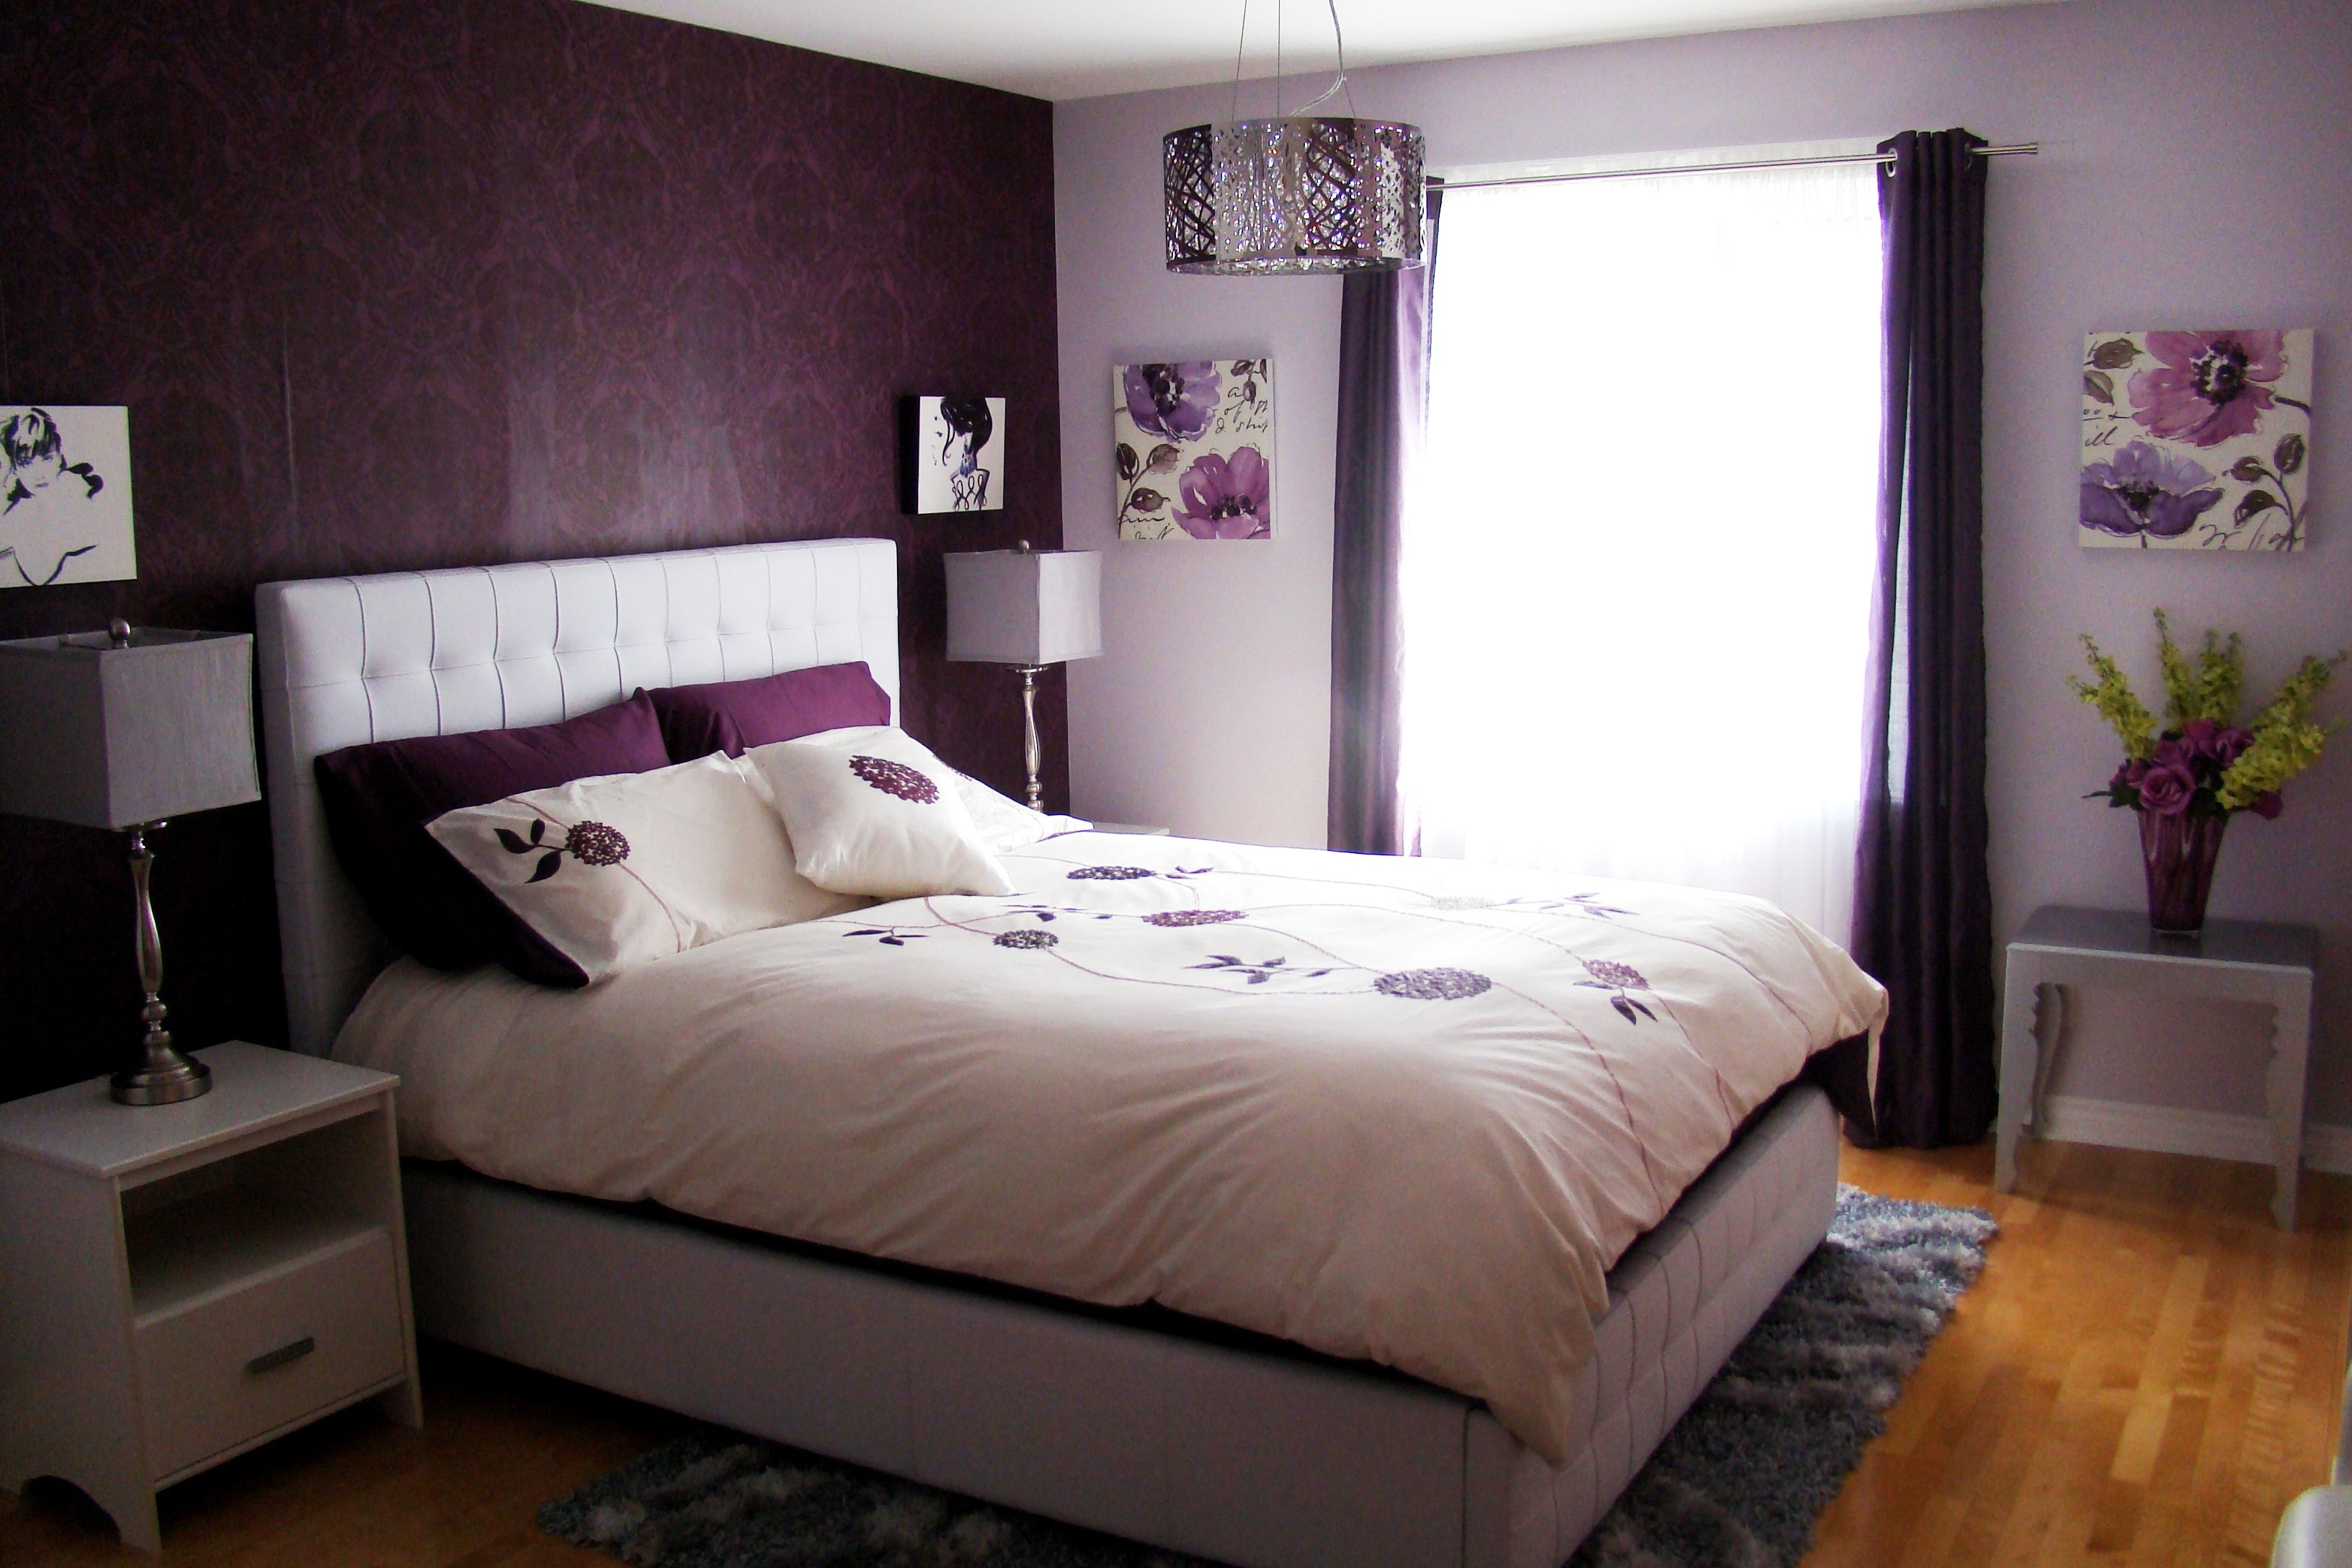 Bed Bedroom Girl Pillows Purple Rug Lamps Curtains